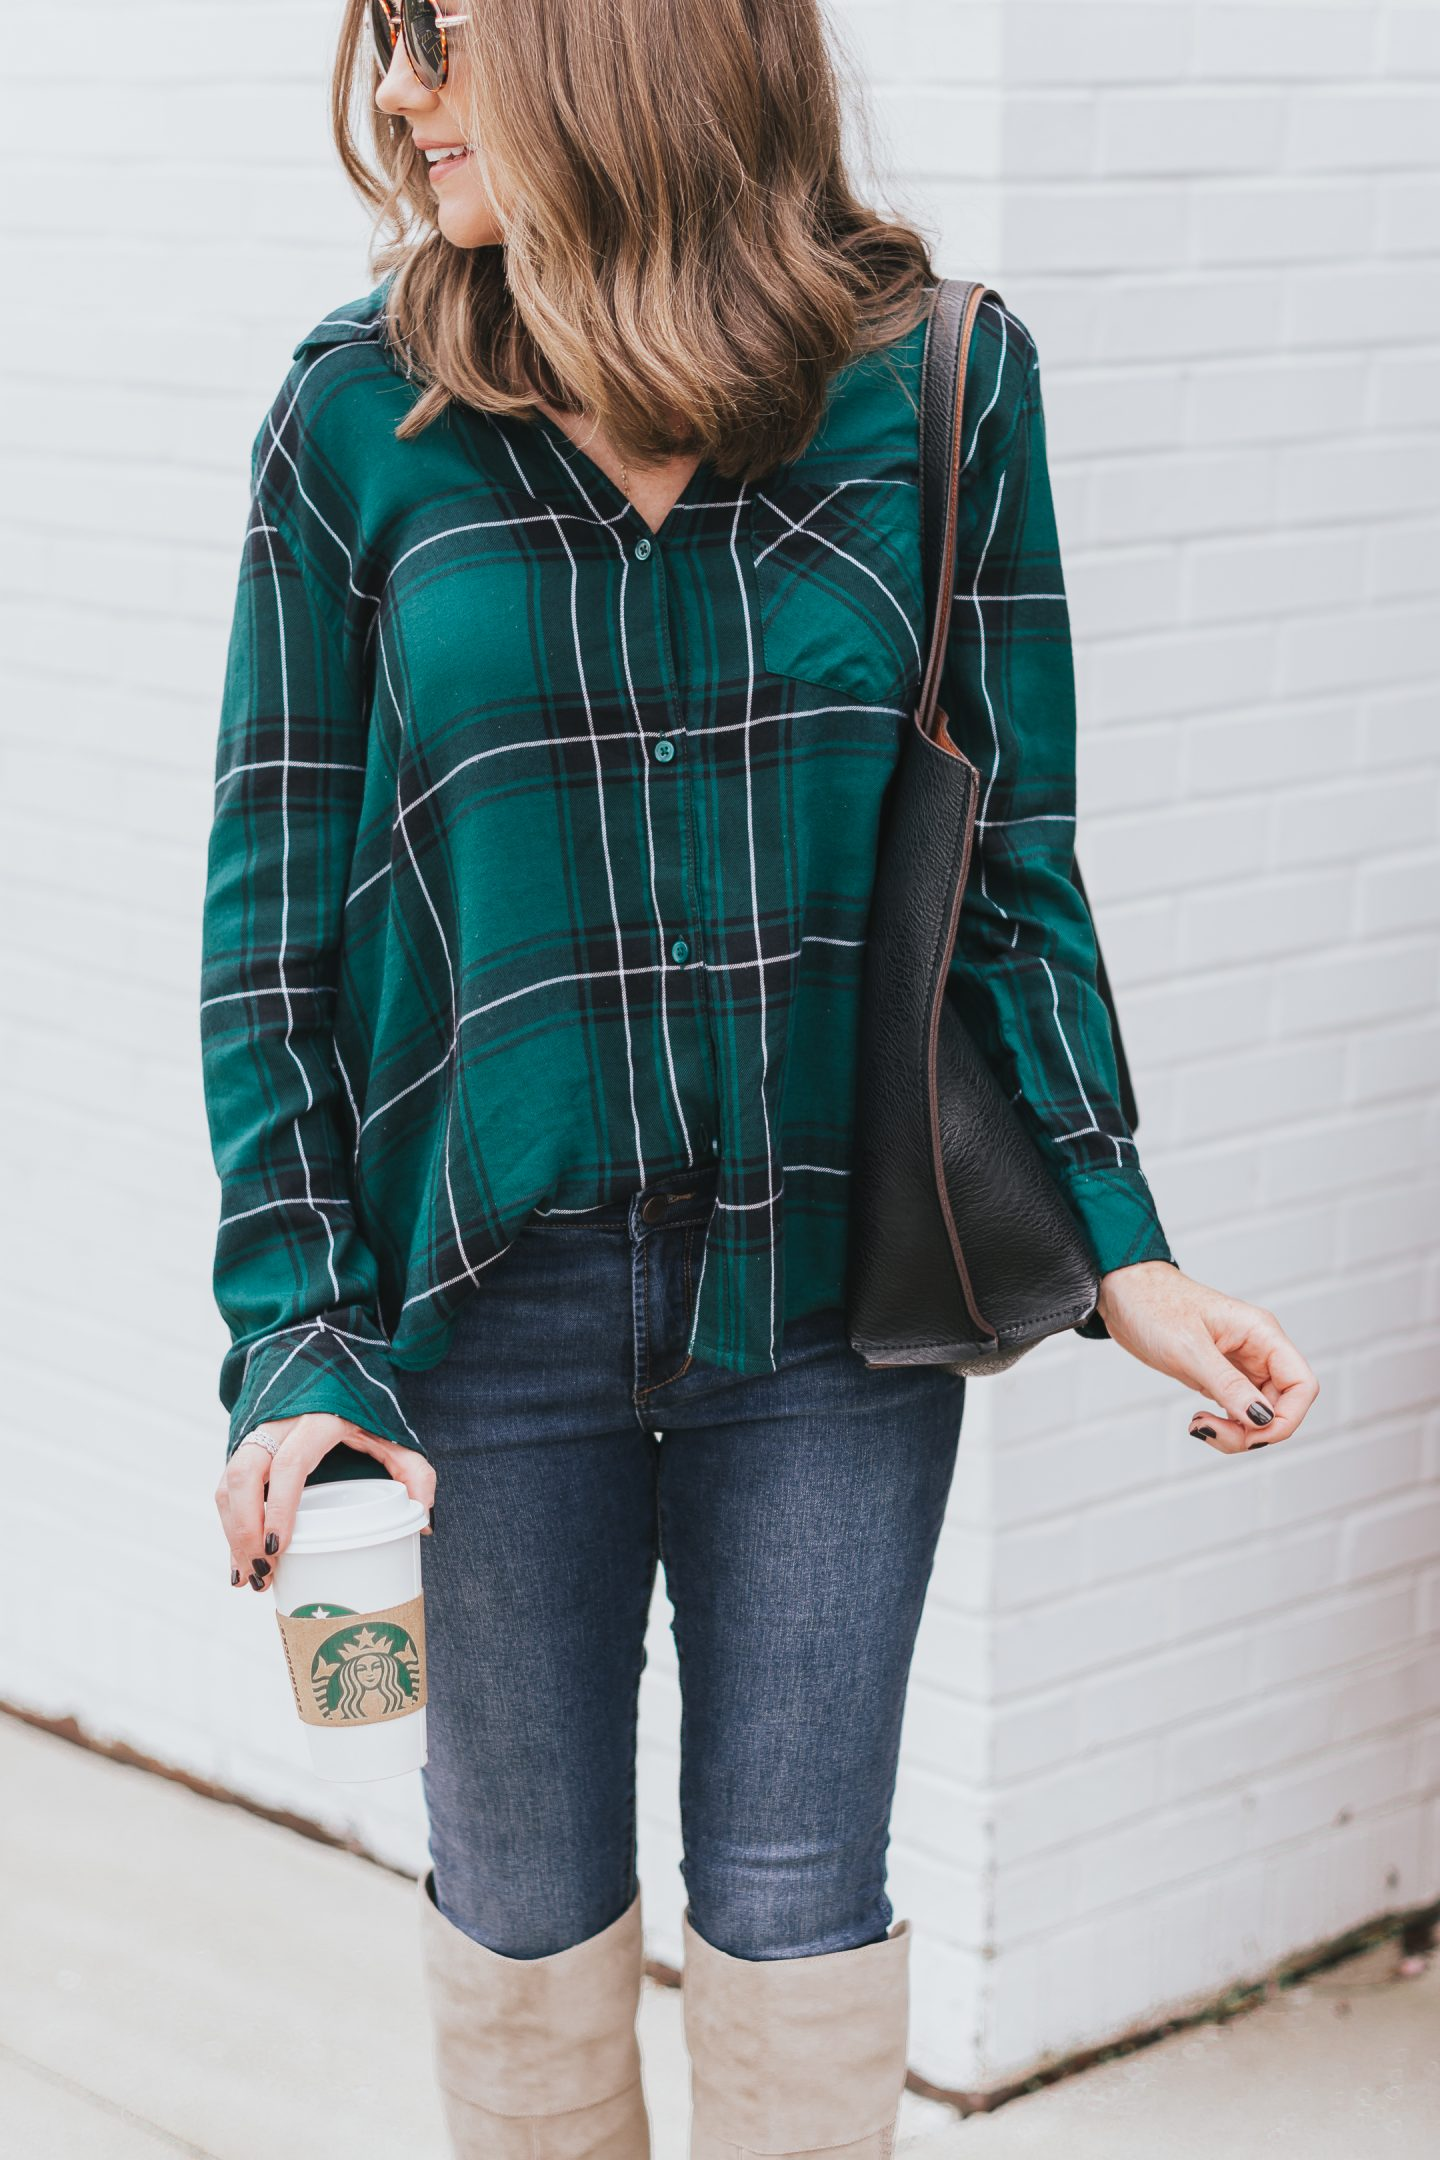 quintessential fall outfit, 9 fall essentials, 2018 fall fashion, plaid shirt, skinny jeans, over the knee boots